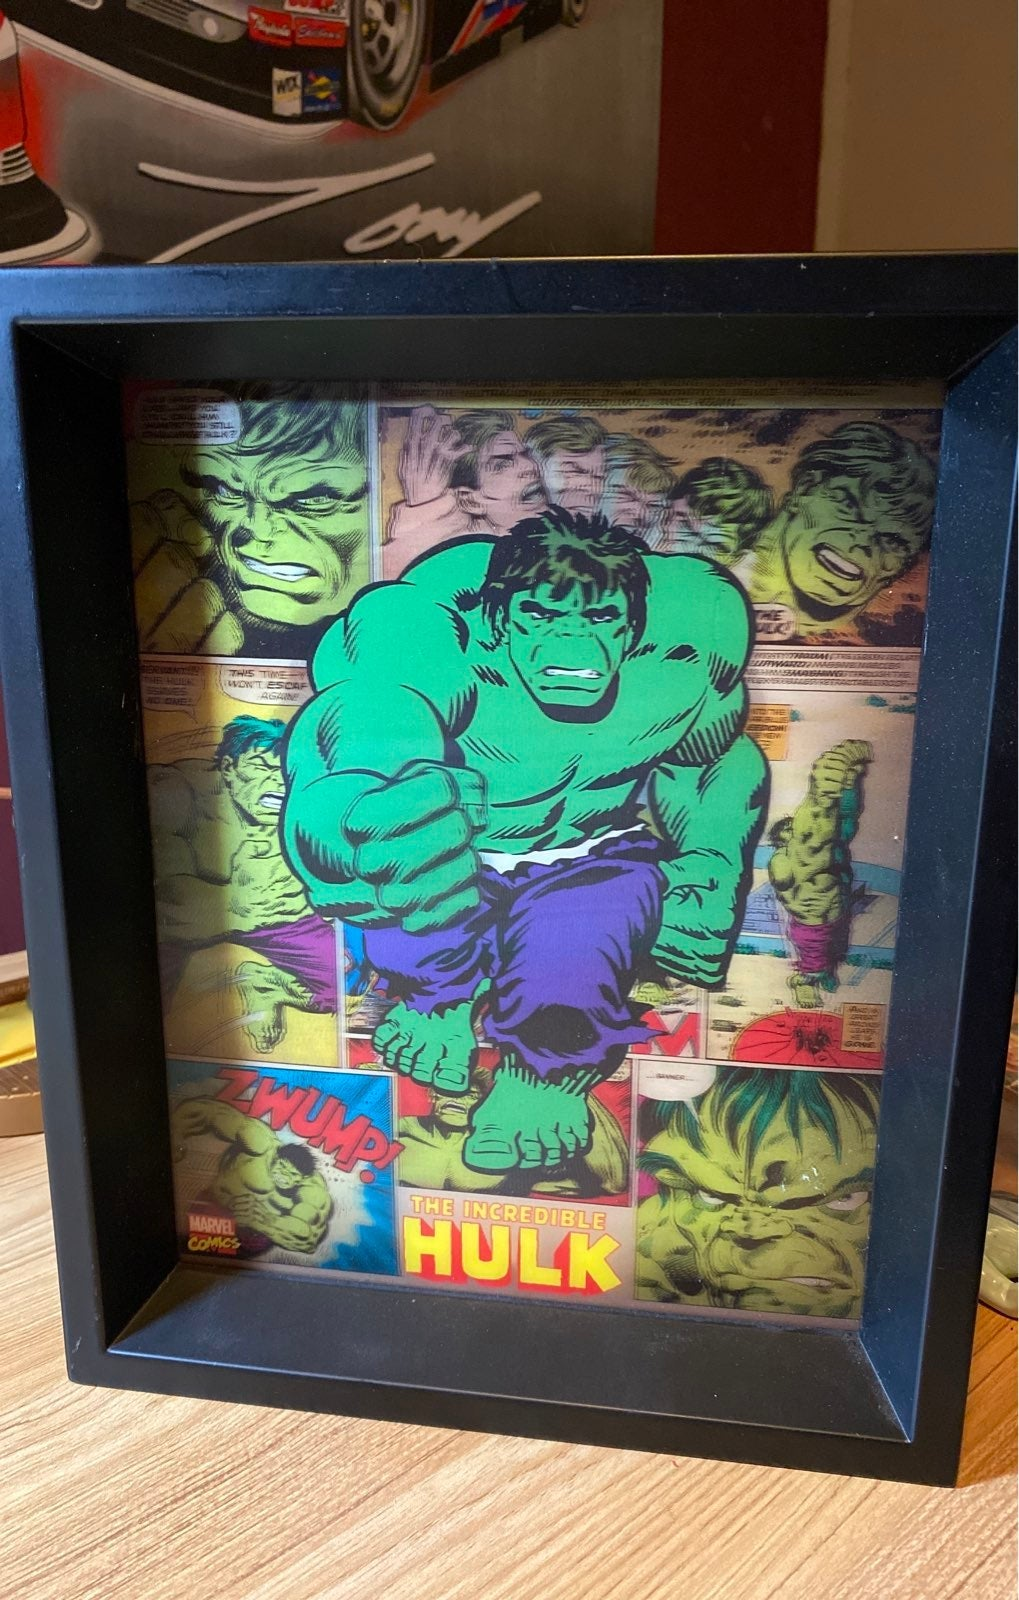 THE INCREDIBLE HULK 3-D holograph